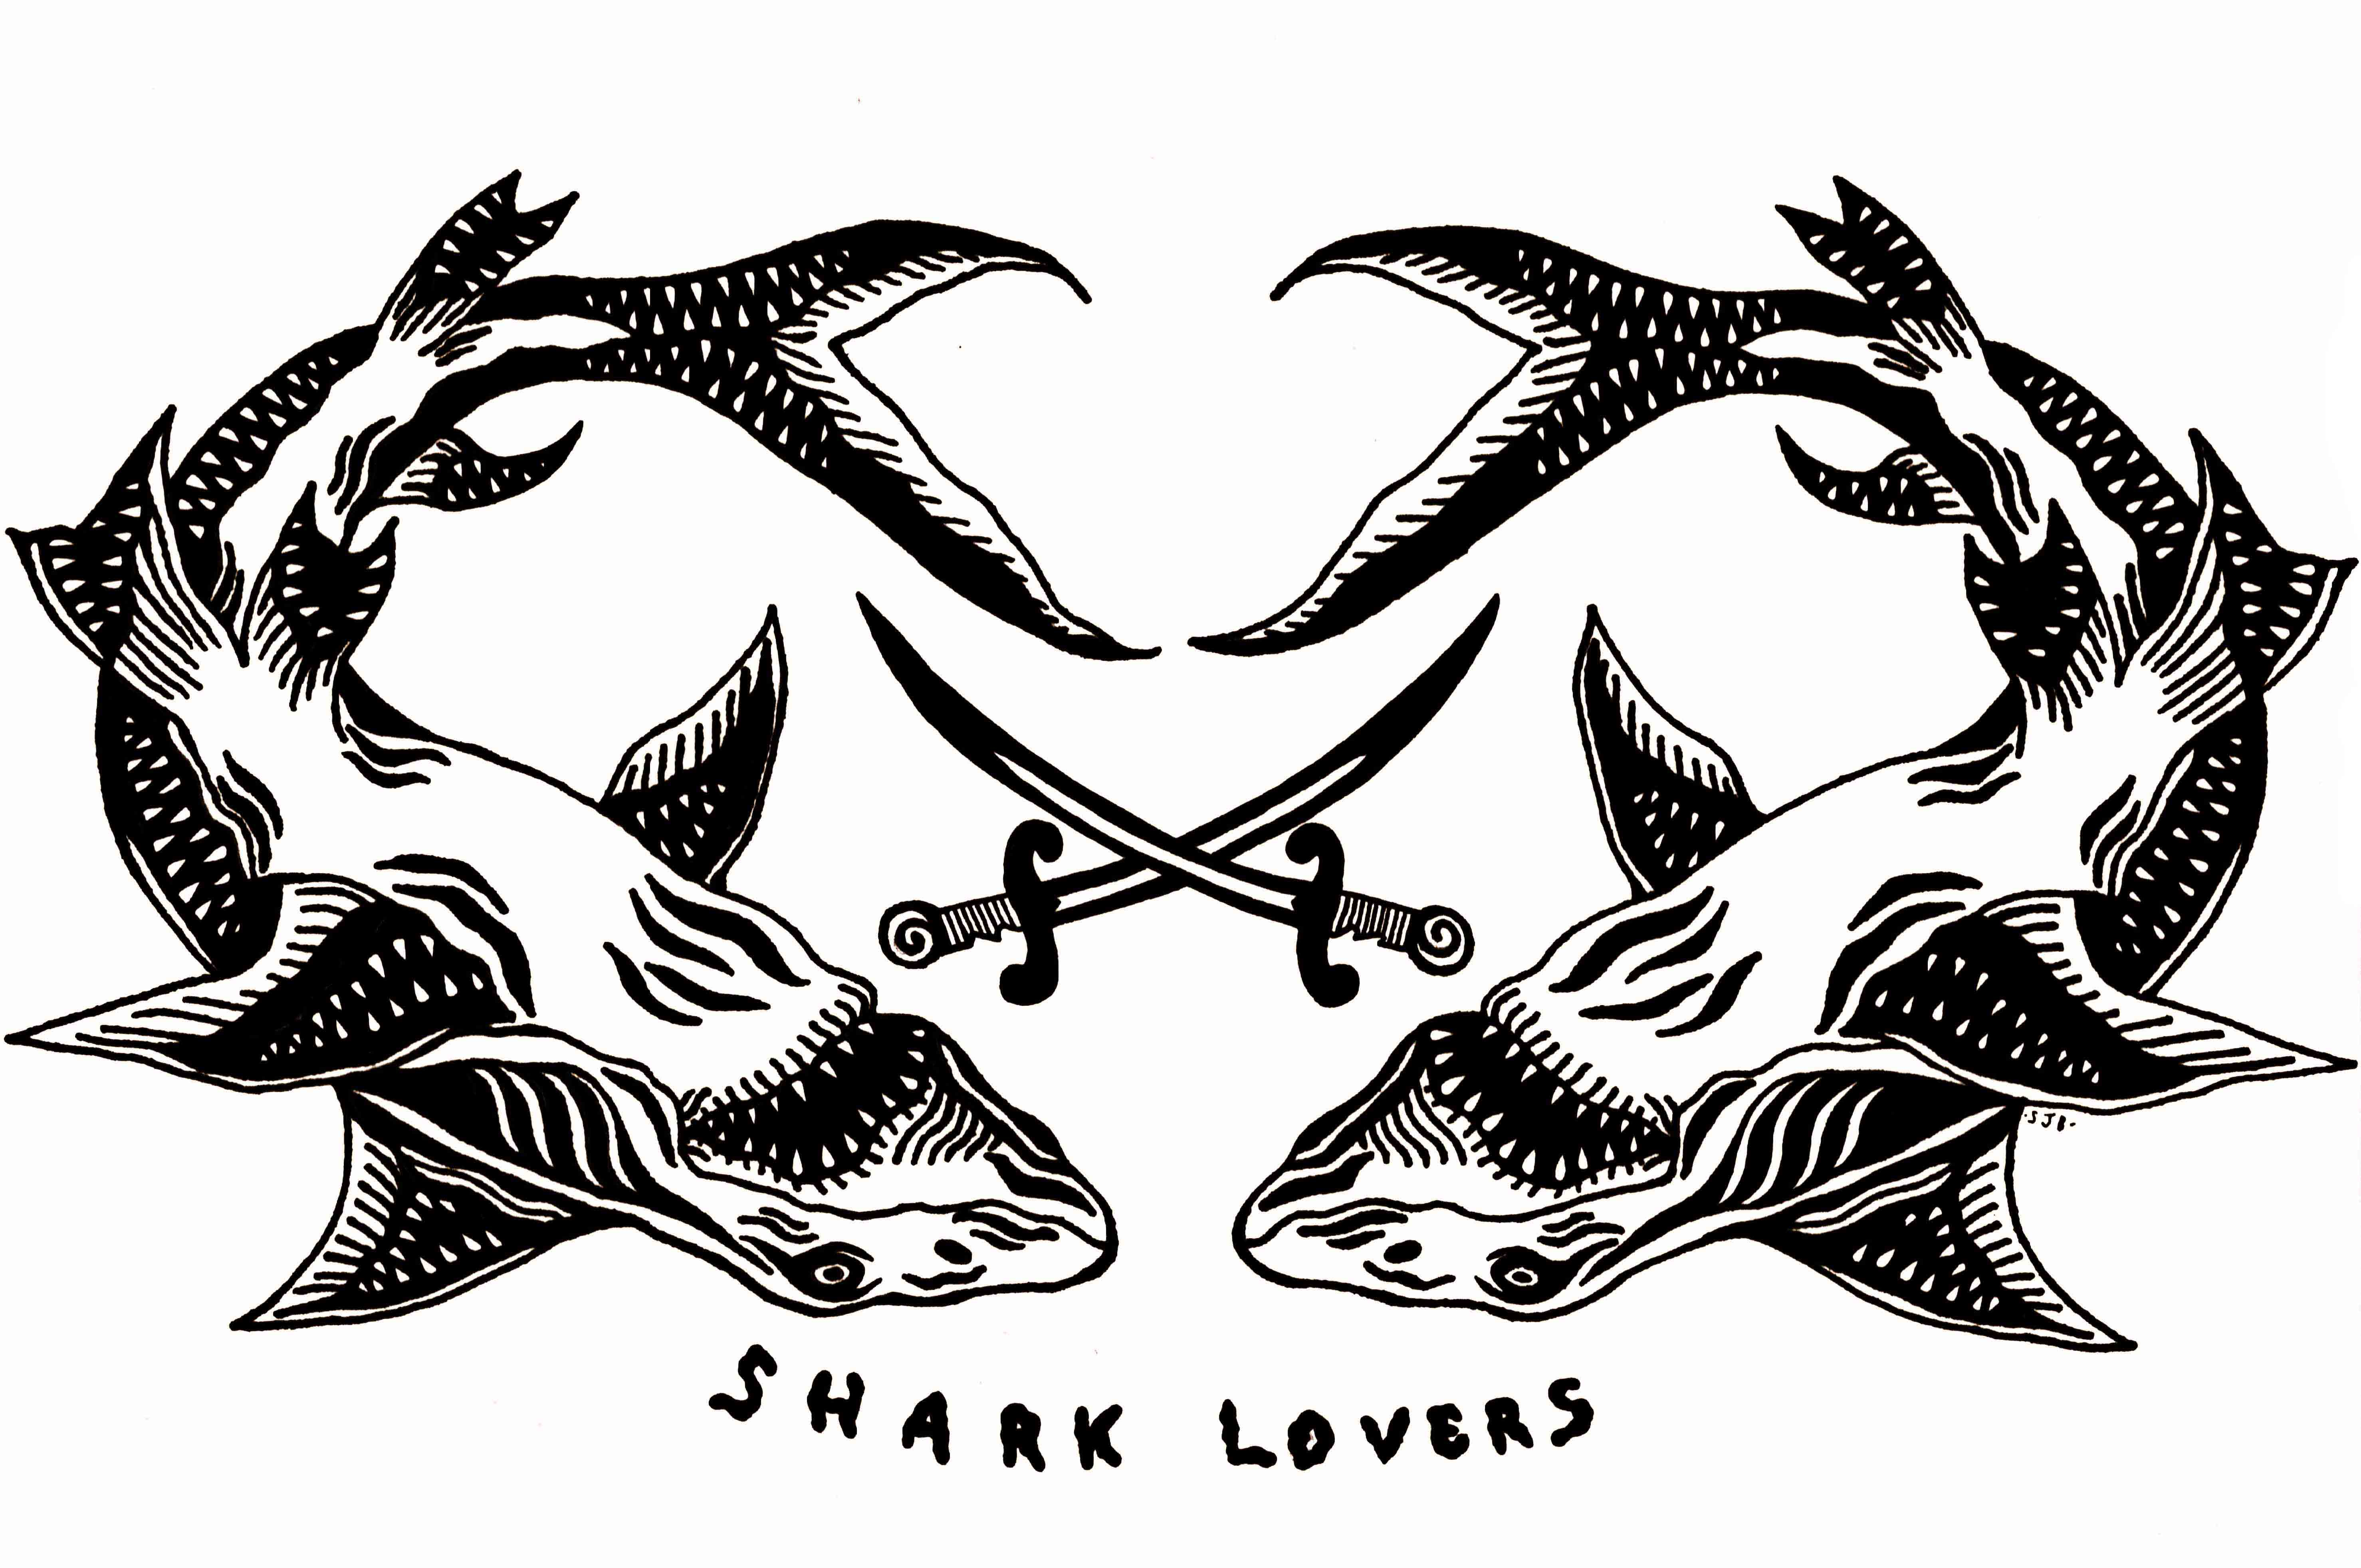 Shark Lovers. Sharpie, pen and ink on paper. 2014.